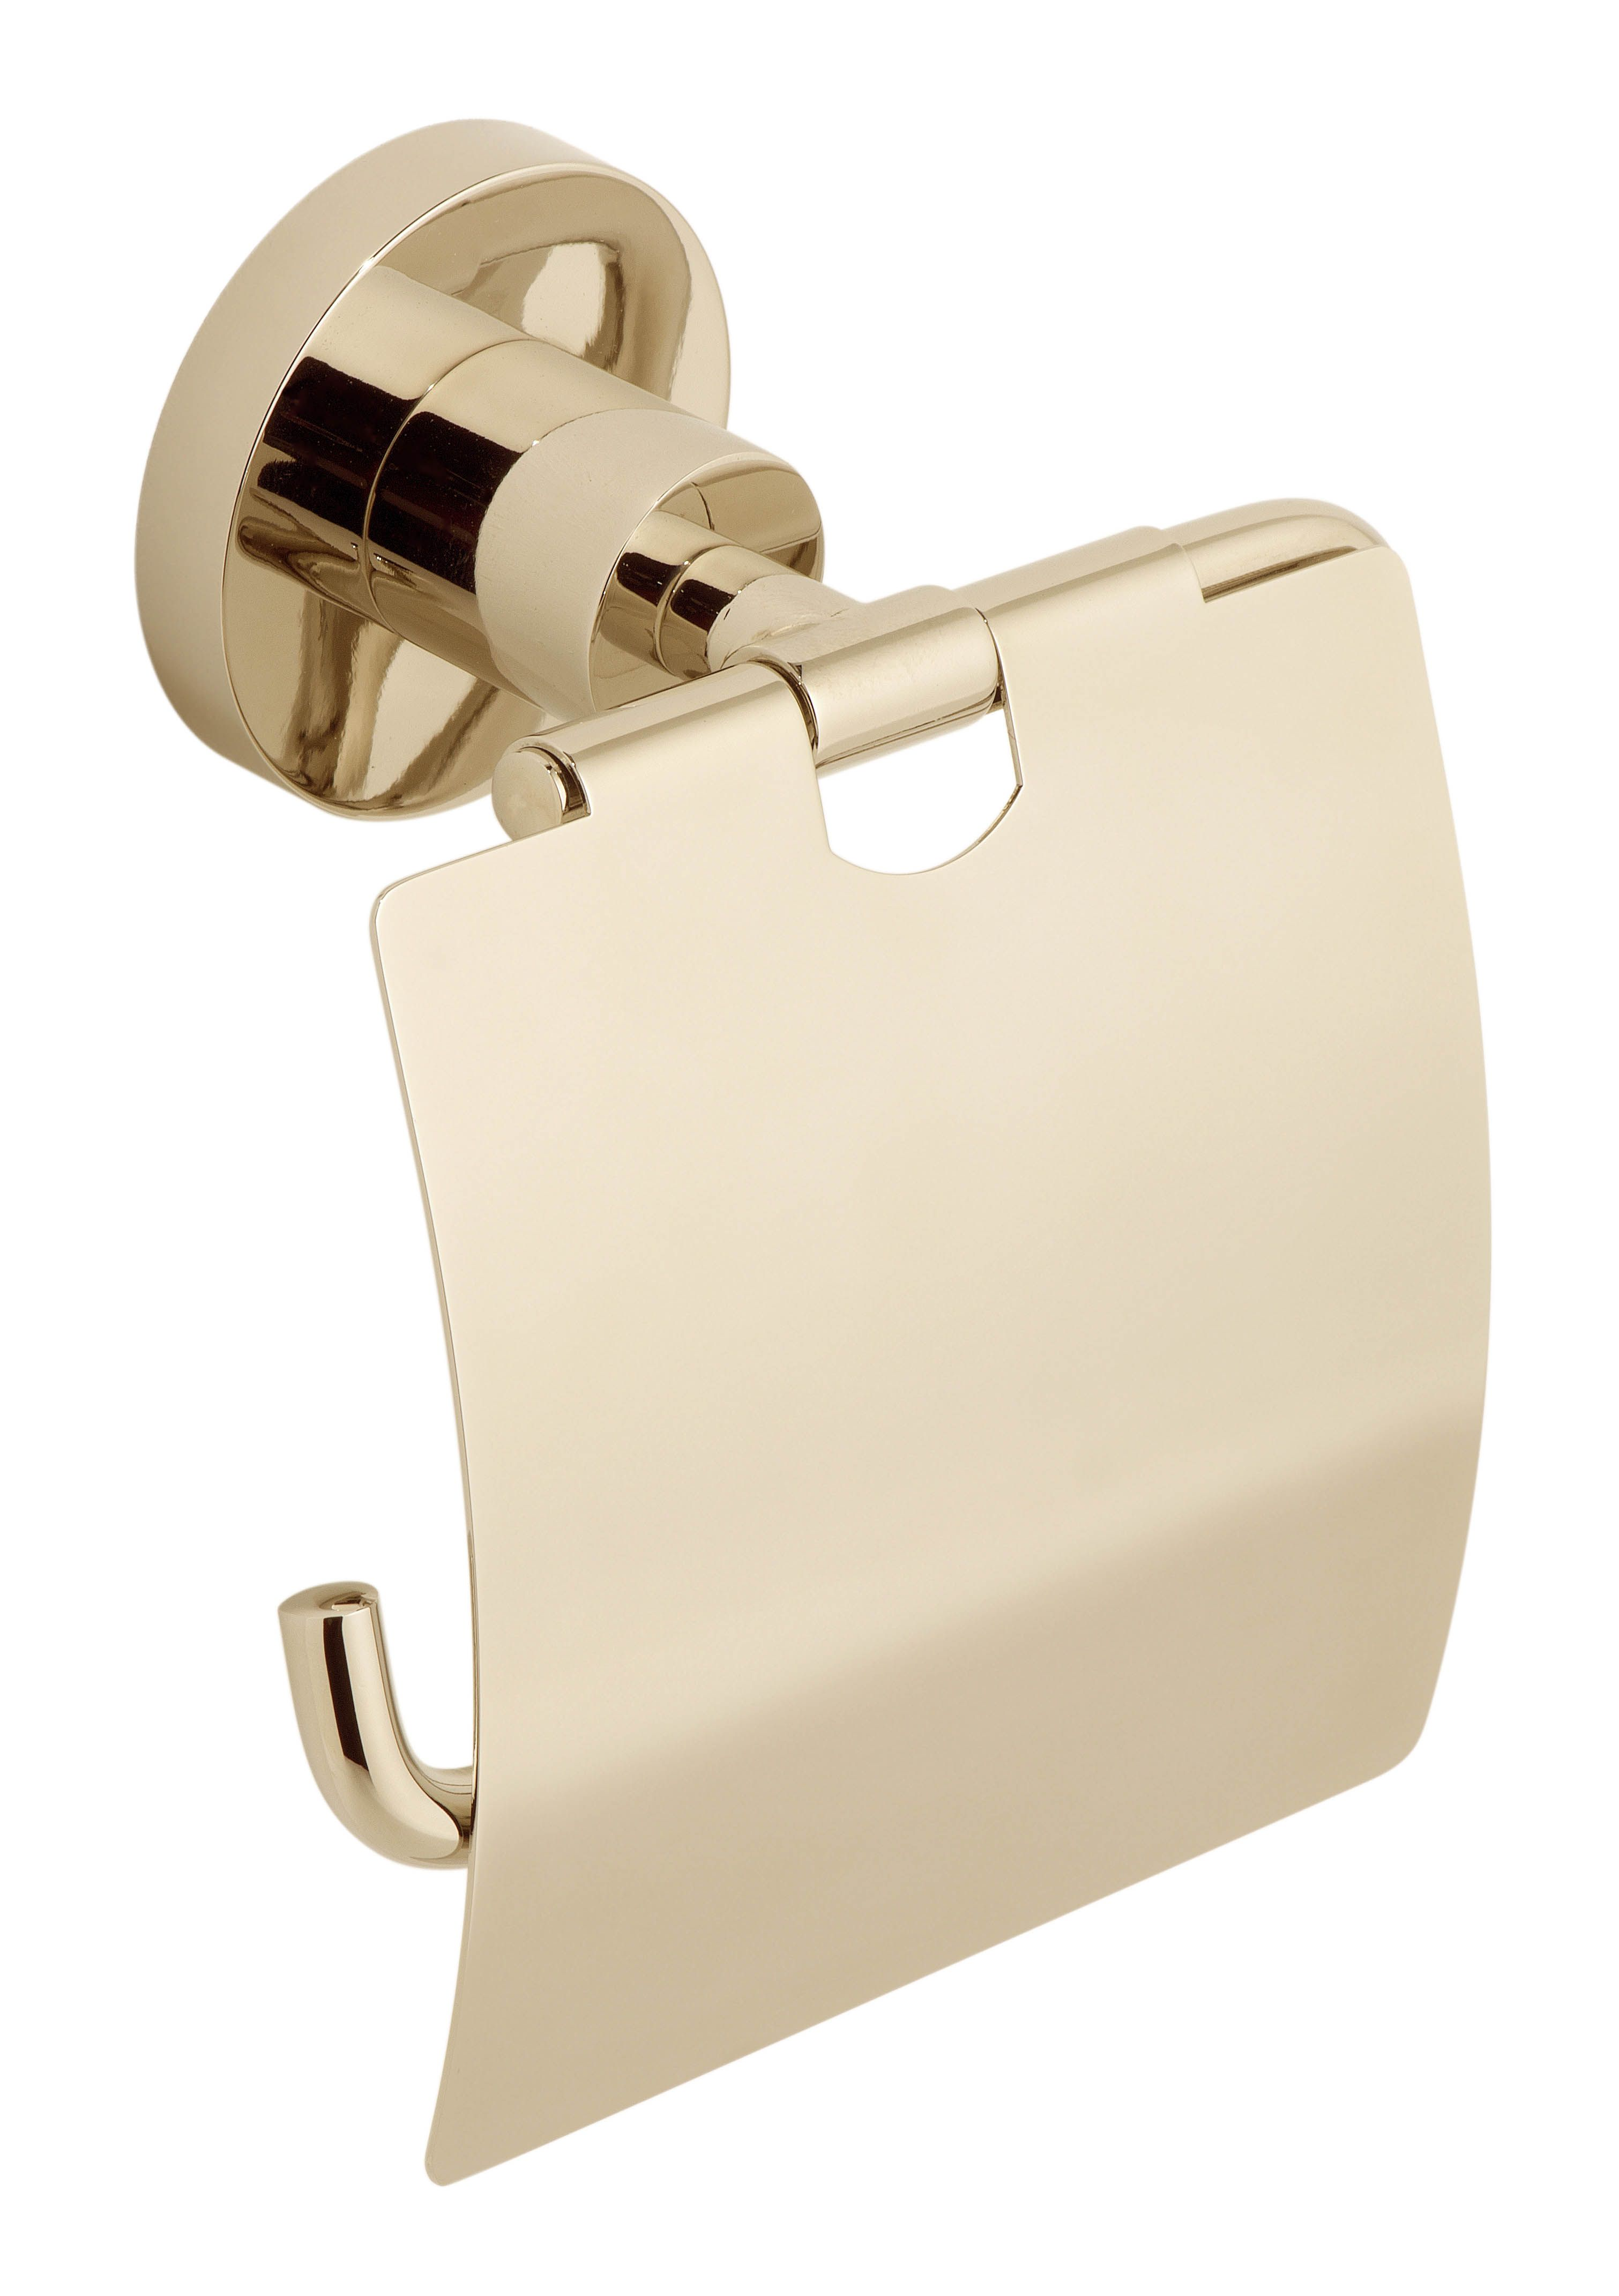 Polished gold Elements covered paper holder by VADO from the ...